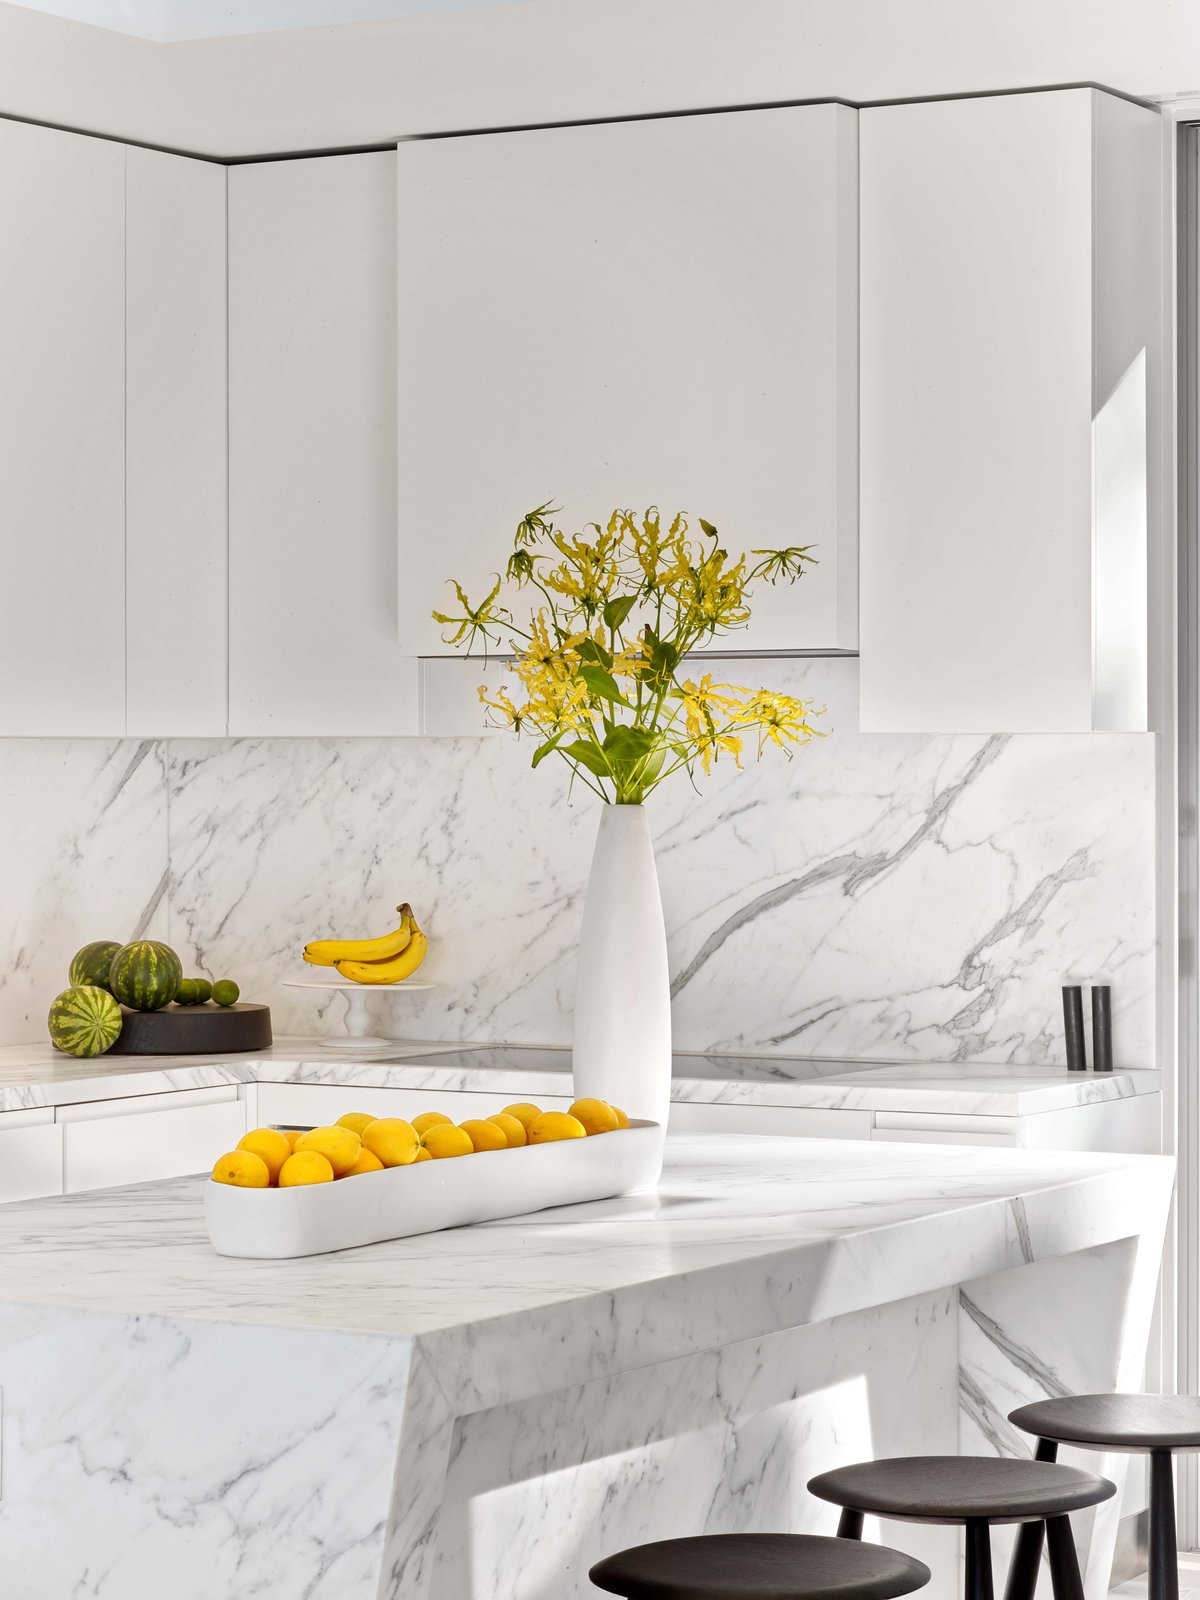 Kitchen, White Cabinet, Marble Counter, Marble Backsplashe, and Cooktops  Glen Park Residence by CCS ARCHITECTURE